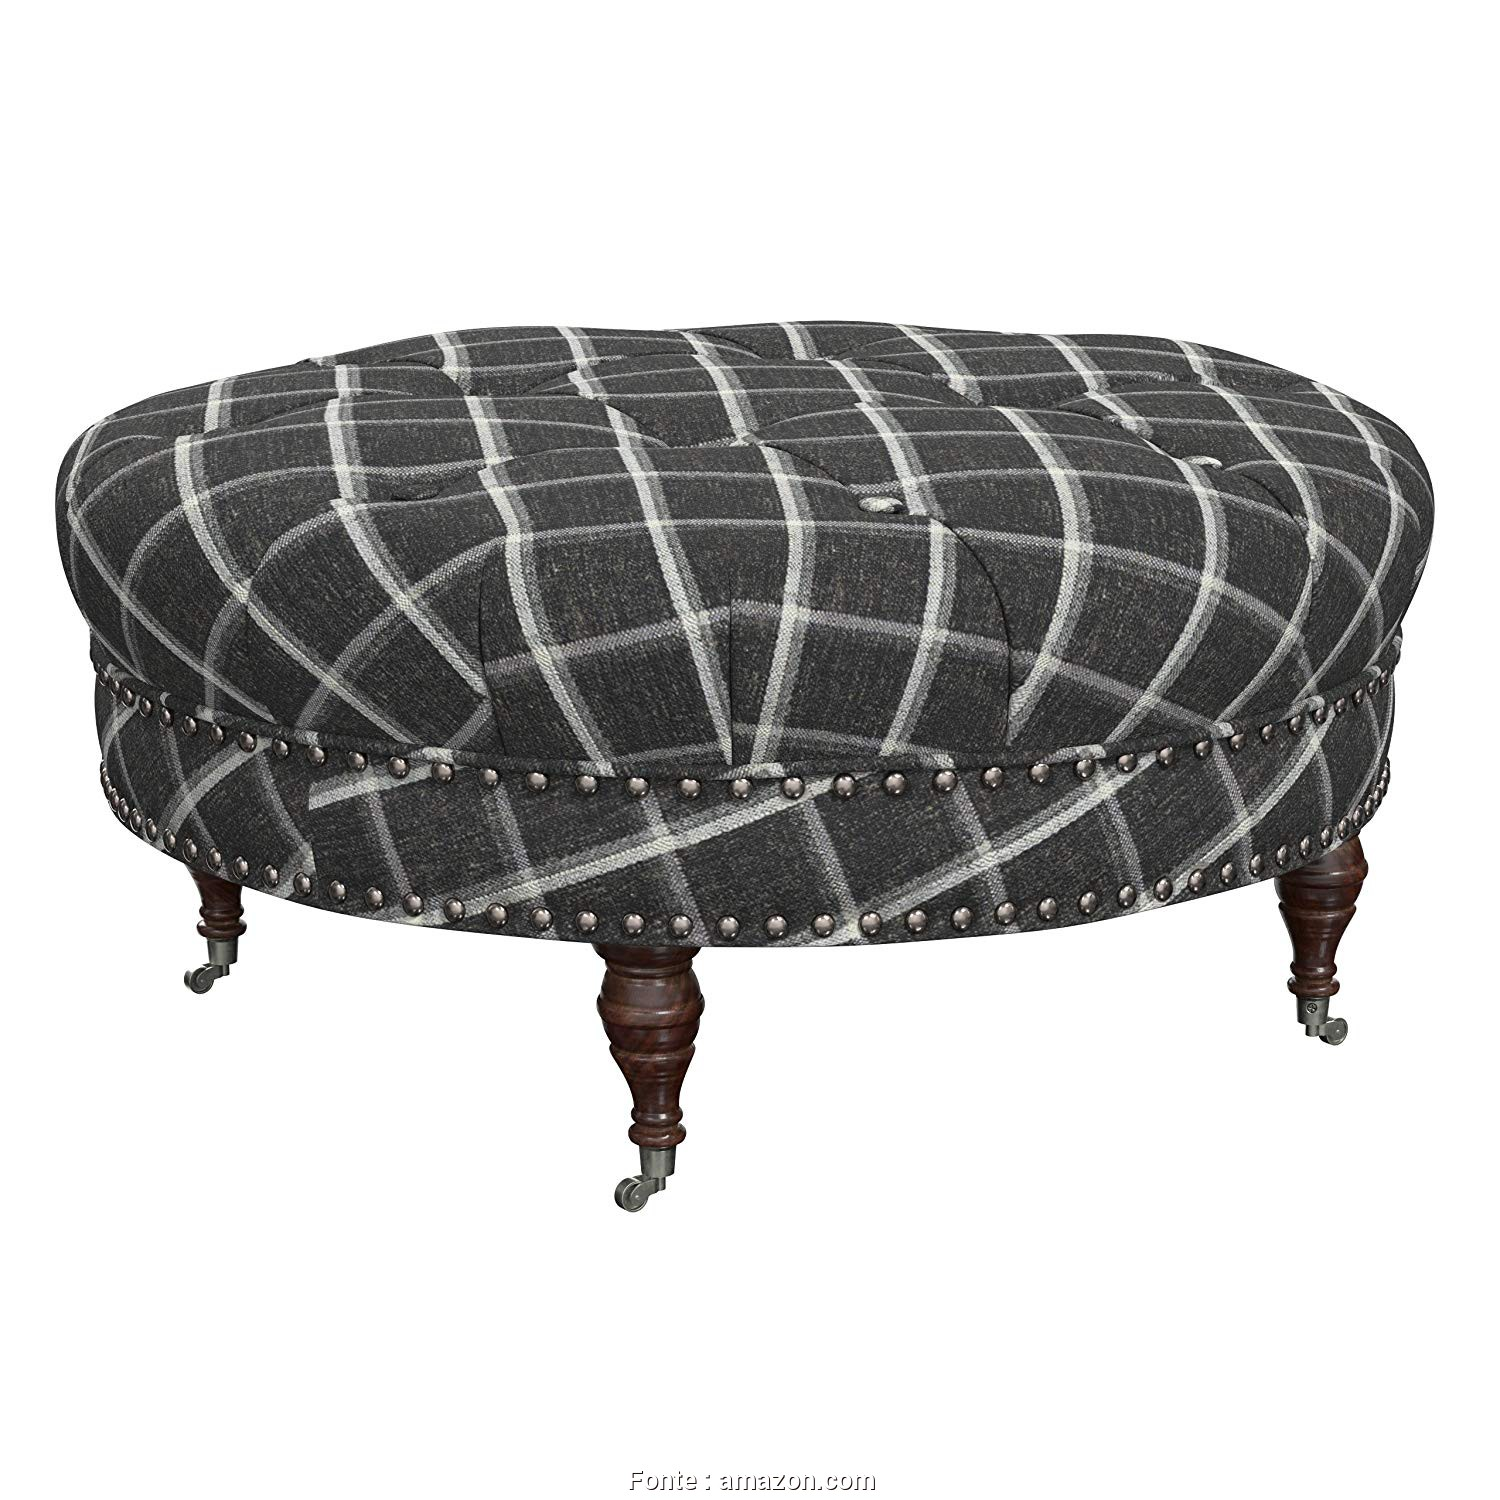 "Plaid Divano Amazon, Locale Amazon.Com: Stone & Beam Janelle Button Tufted Ottoman, 37""W, Flannel: Kitchen & Dining"